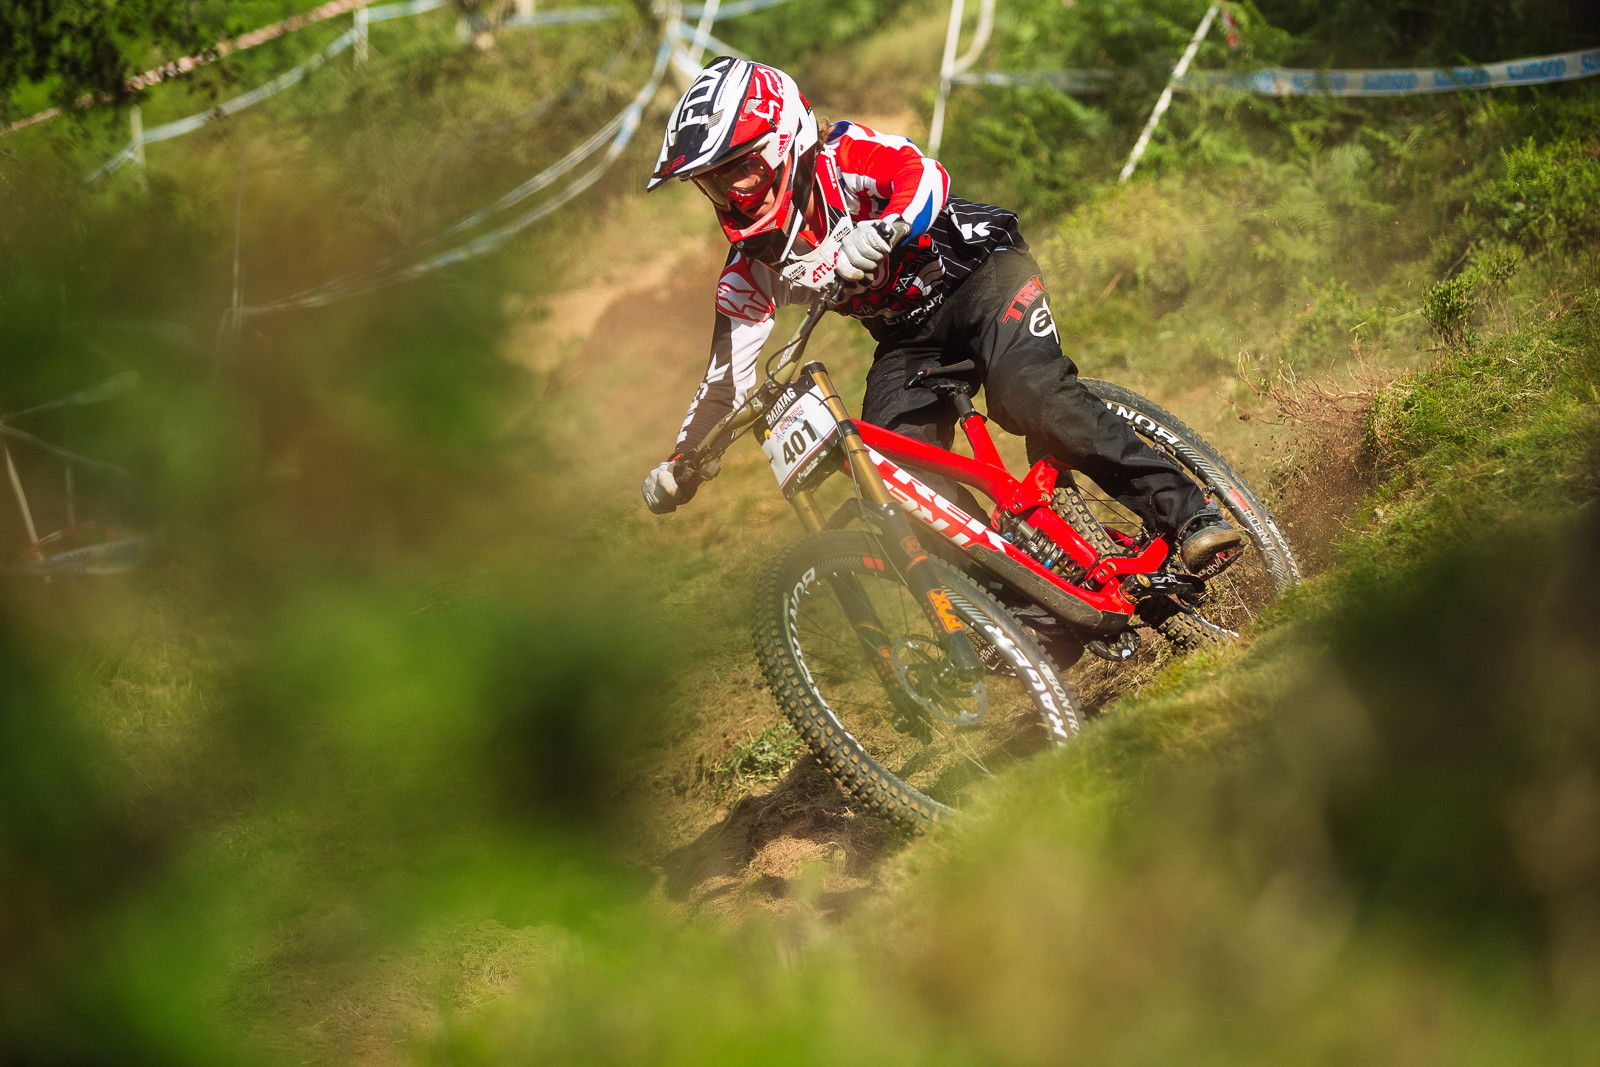 Laurie Greenland - 2015 British National Champs Downhill - 2015 British National Champs Downhill Photos - Mountain Biking Pictures - Vital MTB